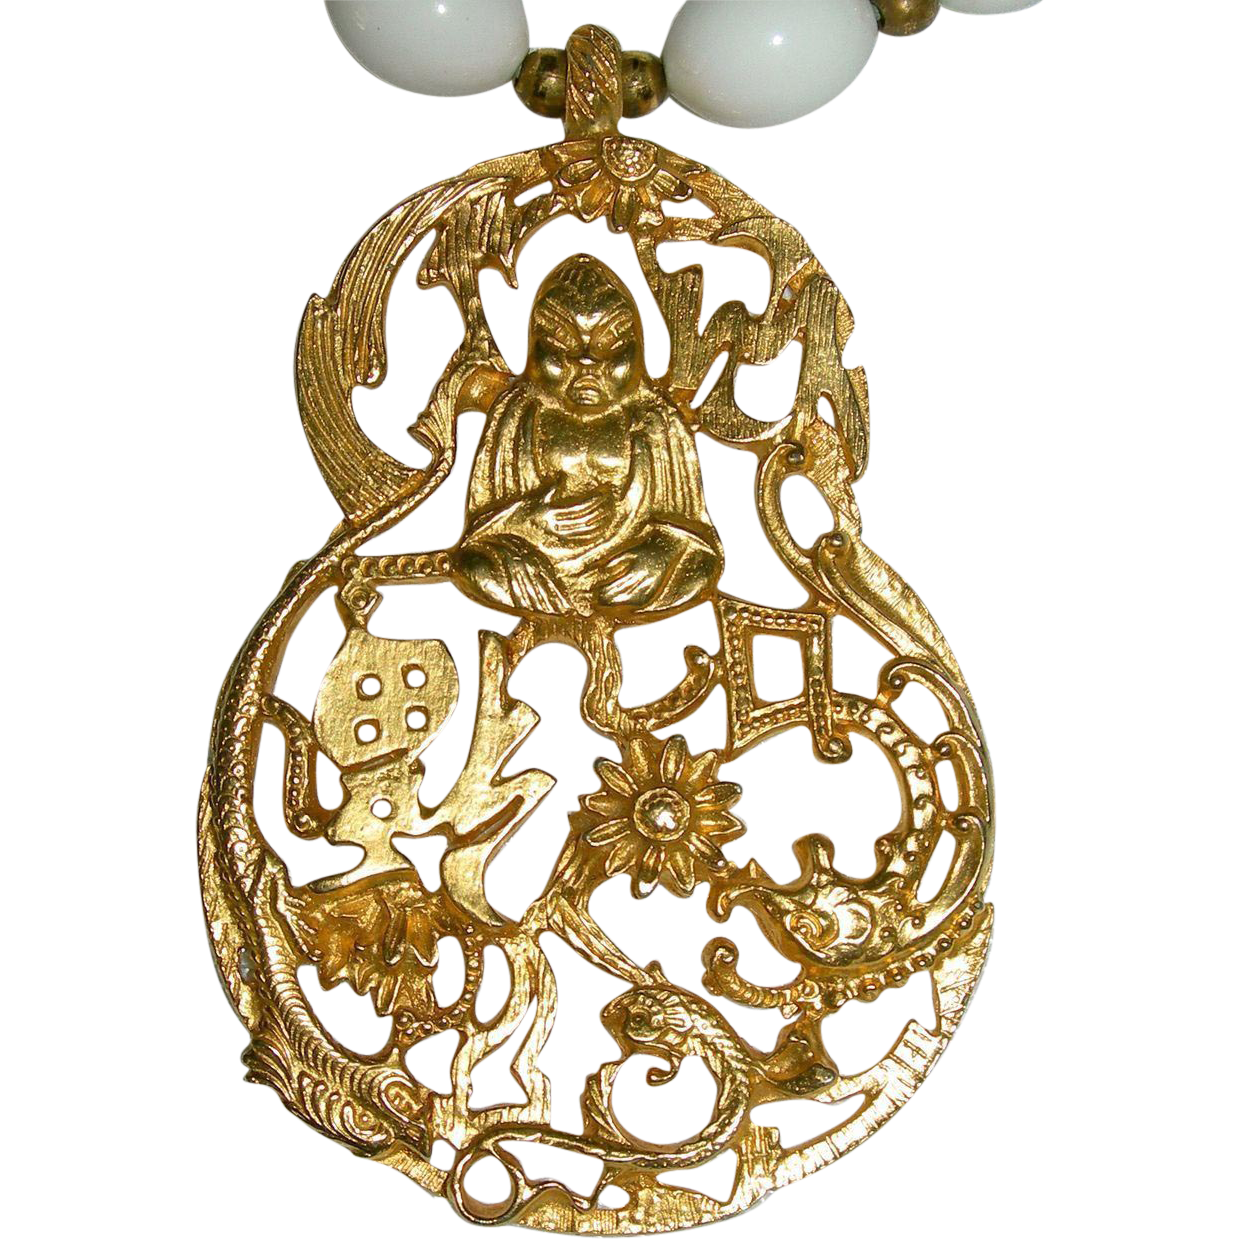 Vintage KENNETH © LANE Saks Exclusive Gilt Gold Buddha Pendant w/ Milk Glass Beads Necklace KJL